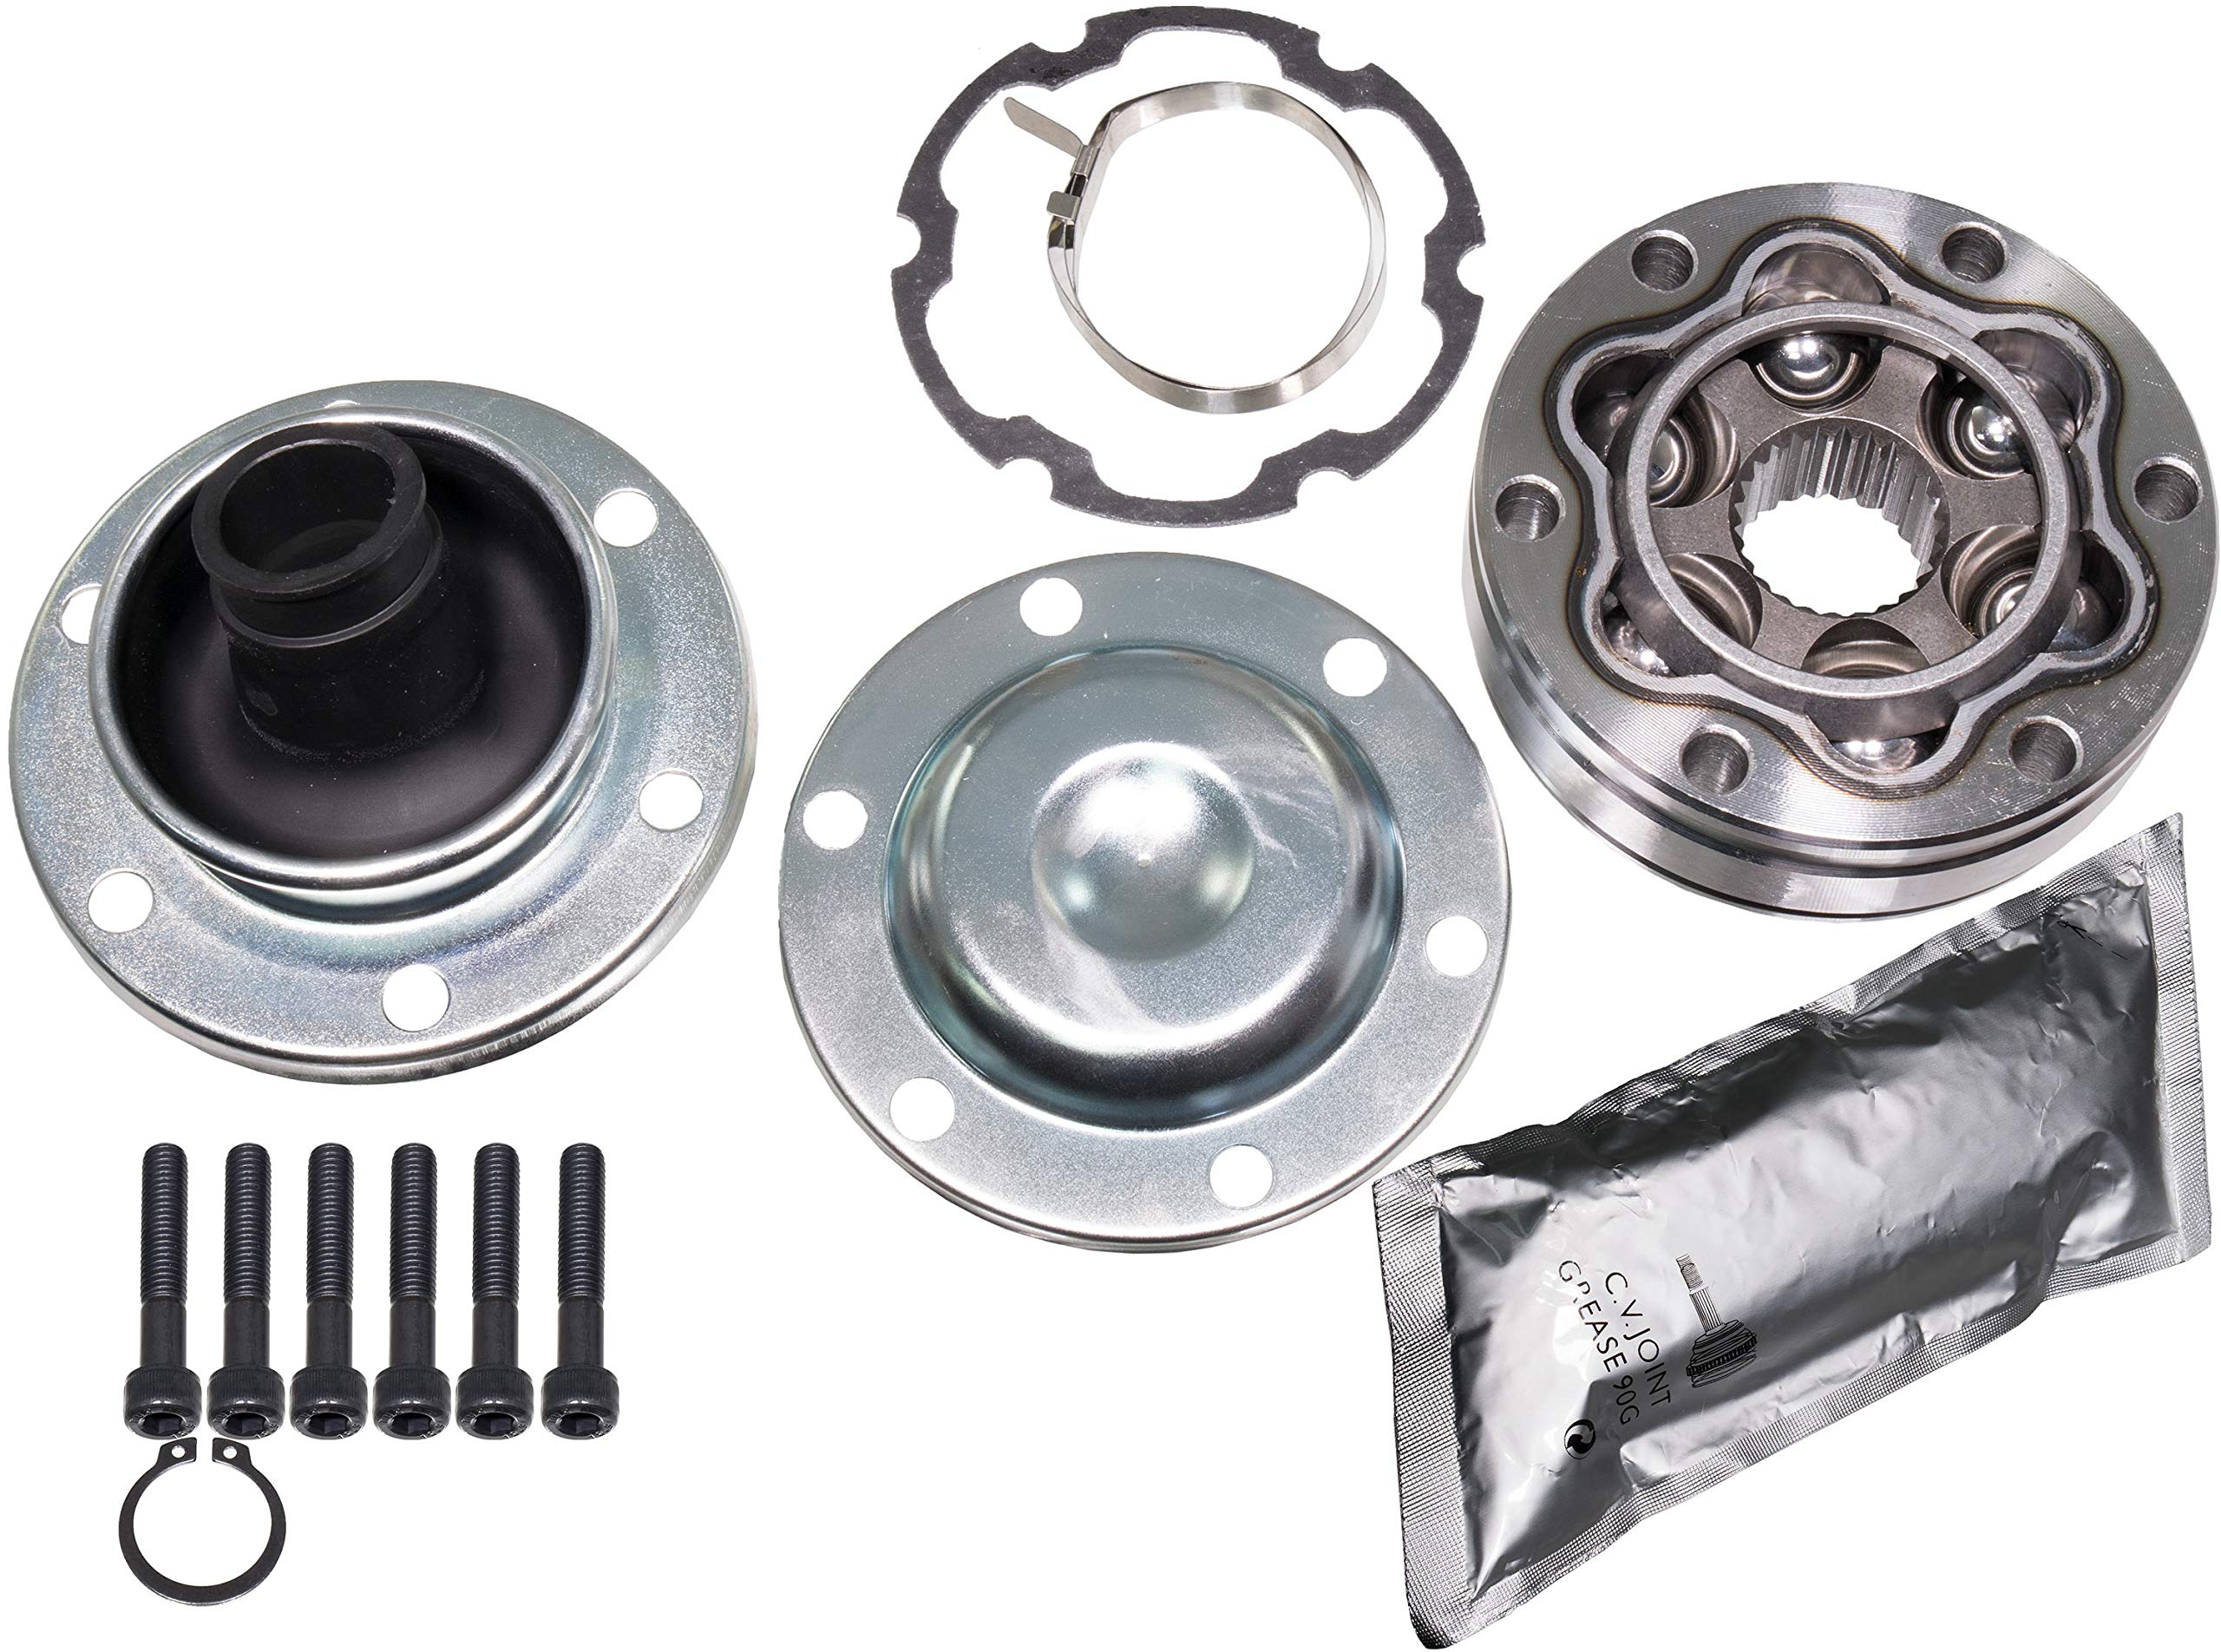 APDTY 043412 Diveshaft CV Joint & Boot Kit Fits Rear Of Front Driveshaft On 1999-2004 Jeep Grand Cherokee 2002-2007 Liberty (Front Drive-Shaft Propeller-Shaft Rear Joint) by APDTY (Image #1)